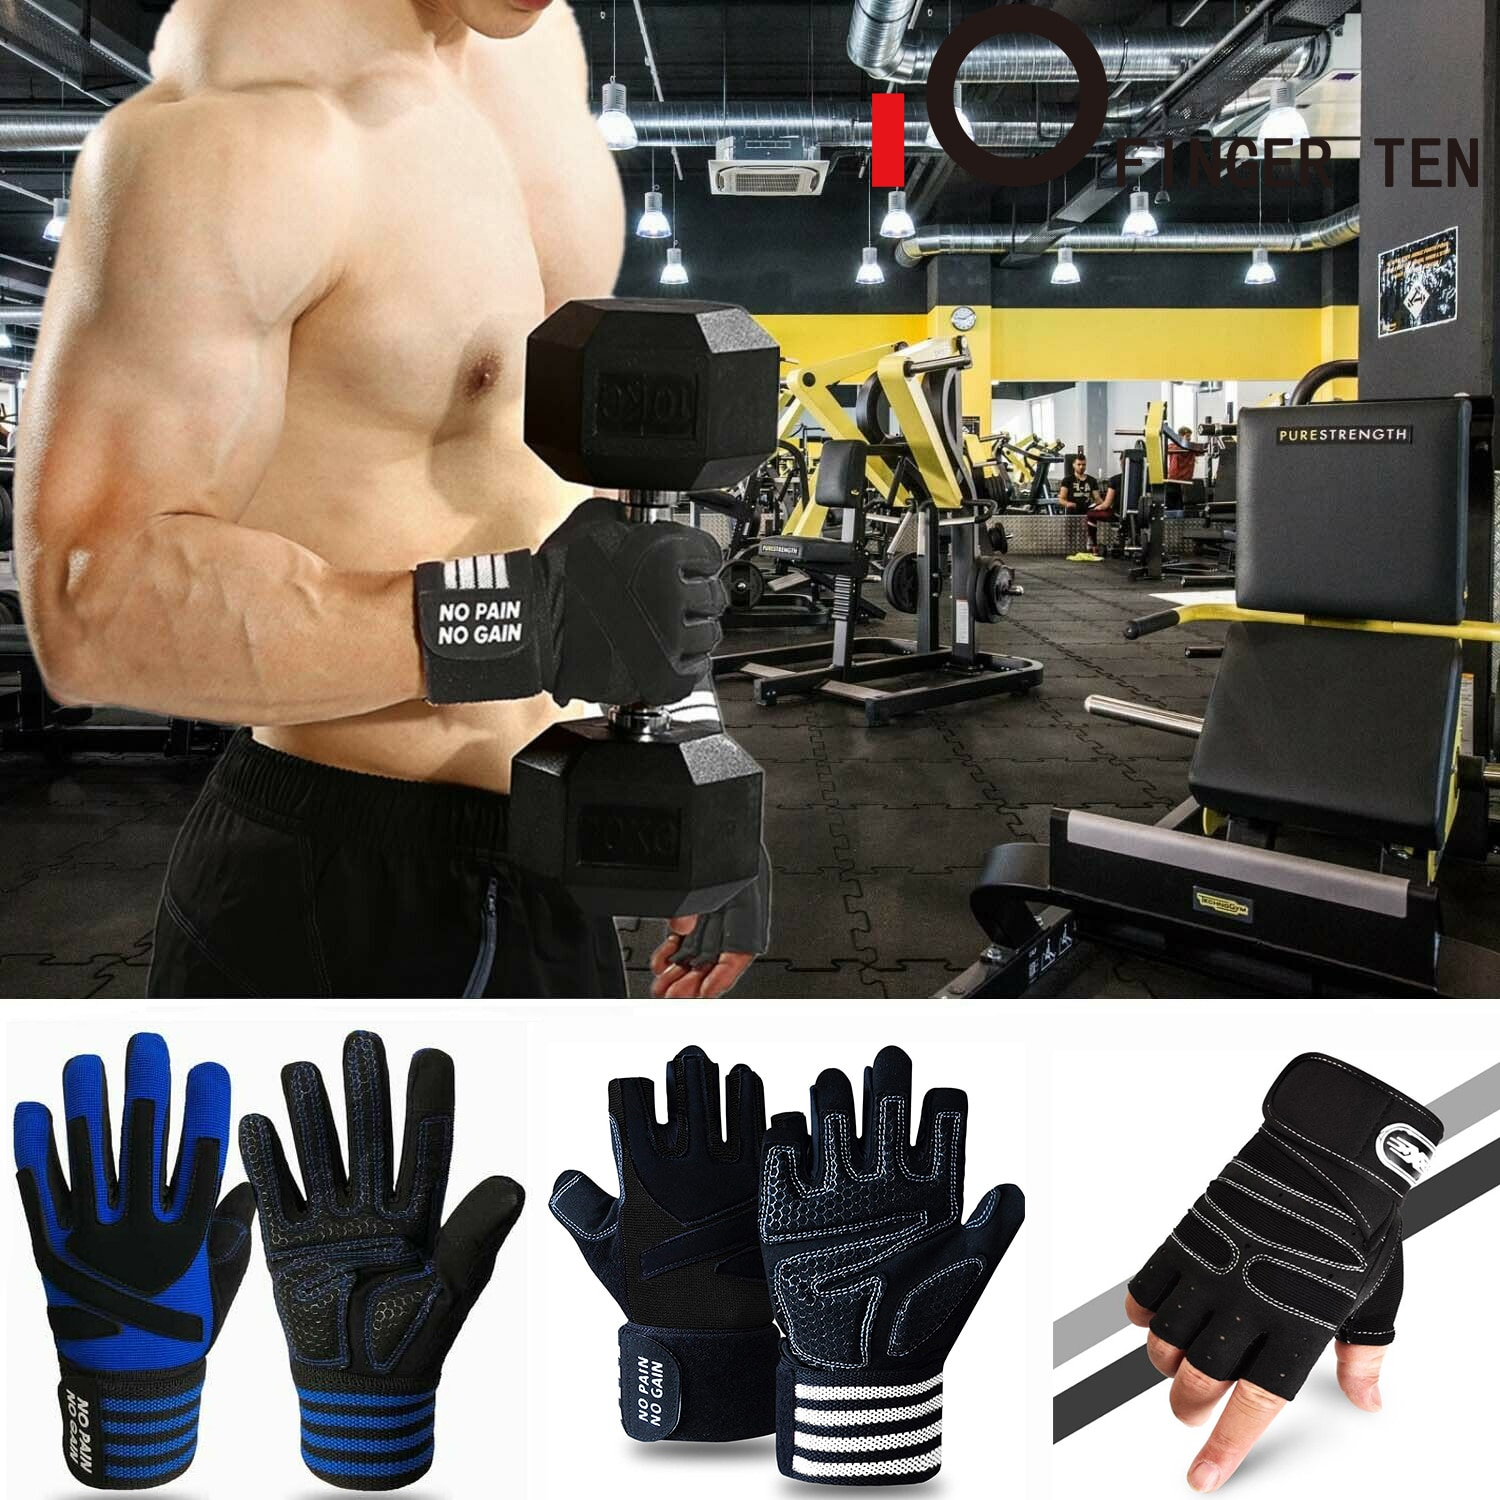 Sports Training Fitness Gloves Men Women Full Half Finger Weight Lifting Glove Wrist Support Protector Equipment Drop Shipping anti skid sports half finger care palms fitness gloves training dumbbell hand protector fitness equipment